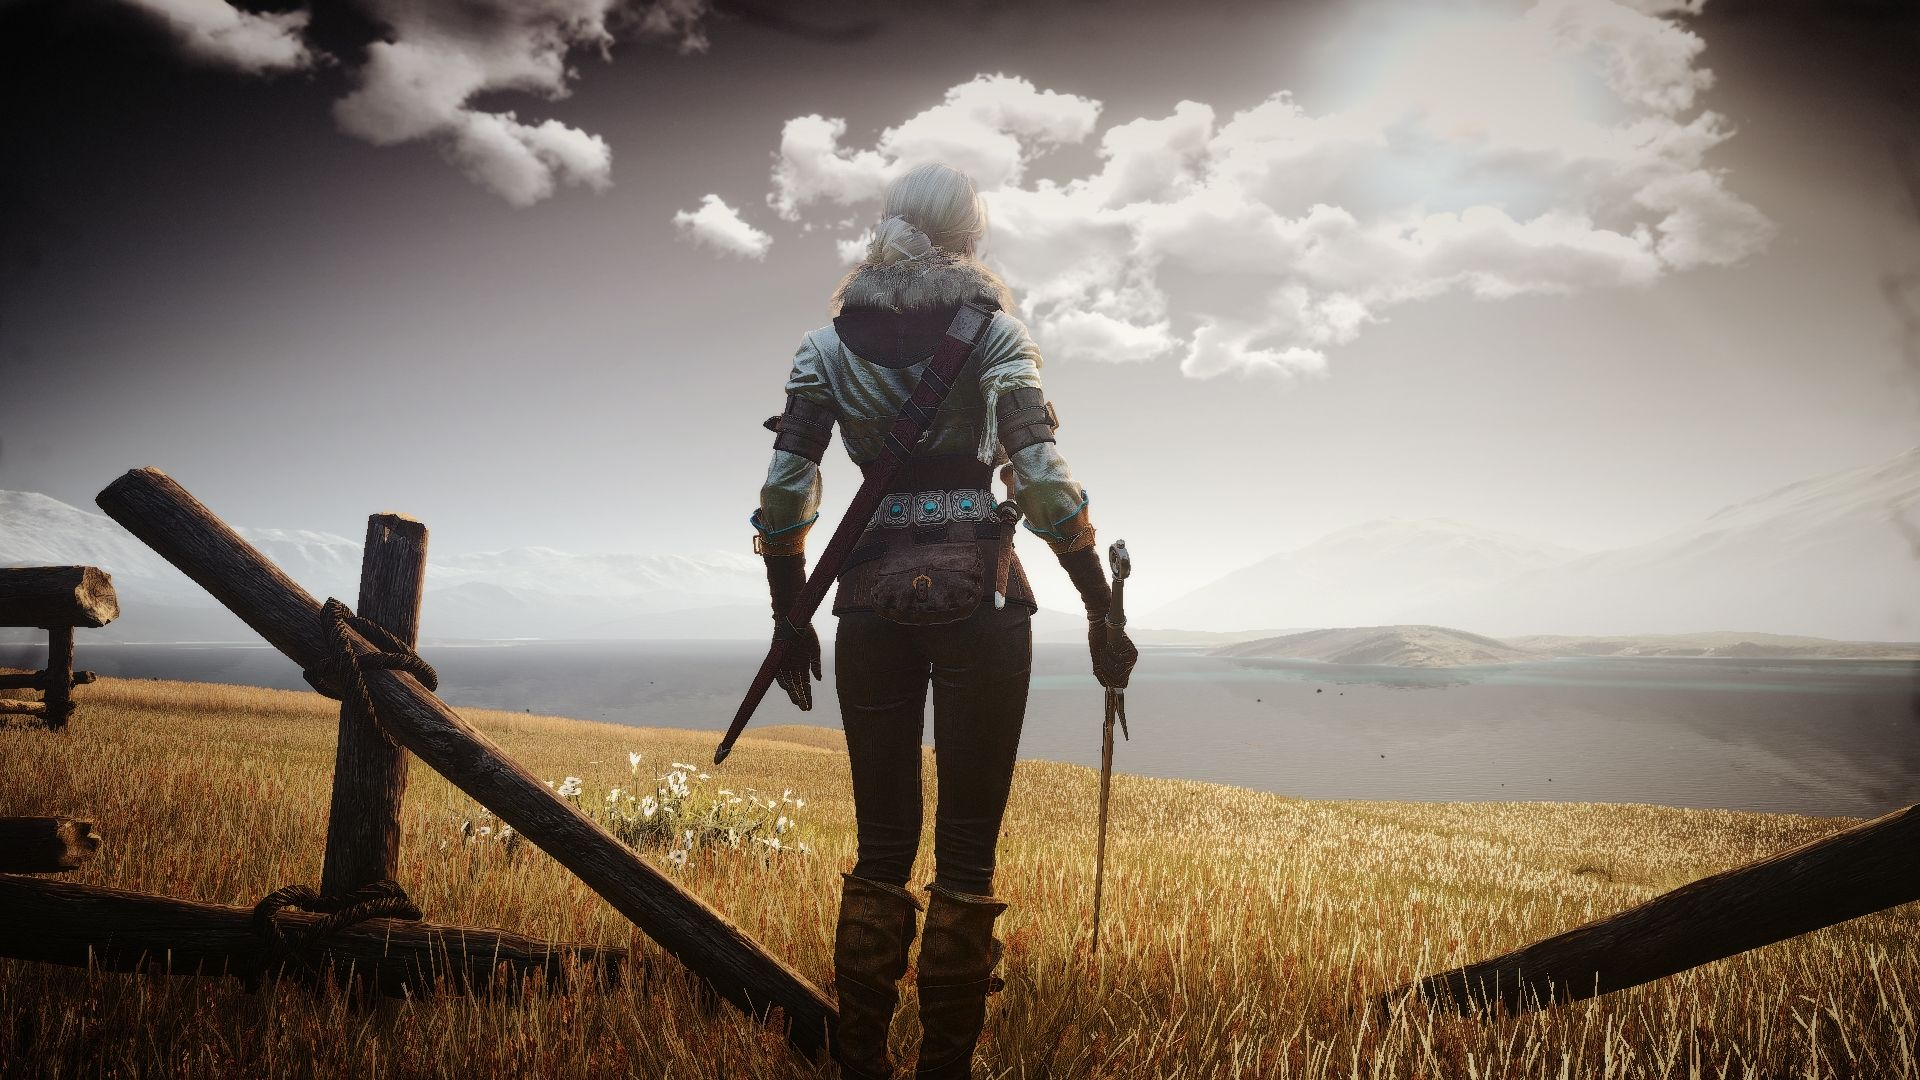 The Witcher Ciri, Desktop Wallpaper